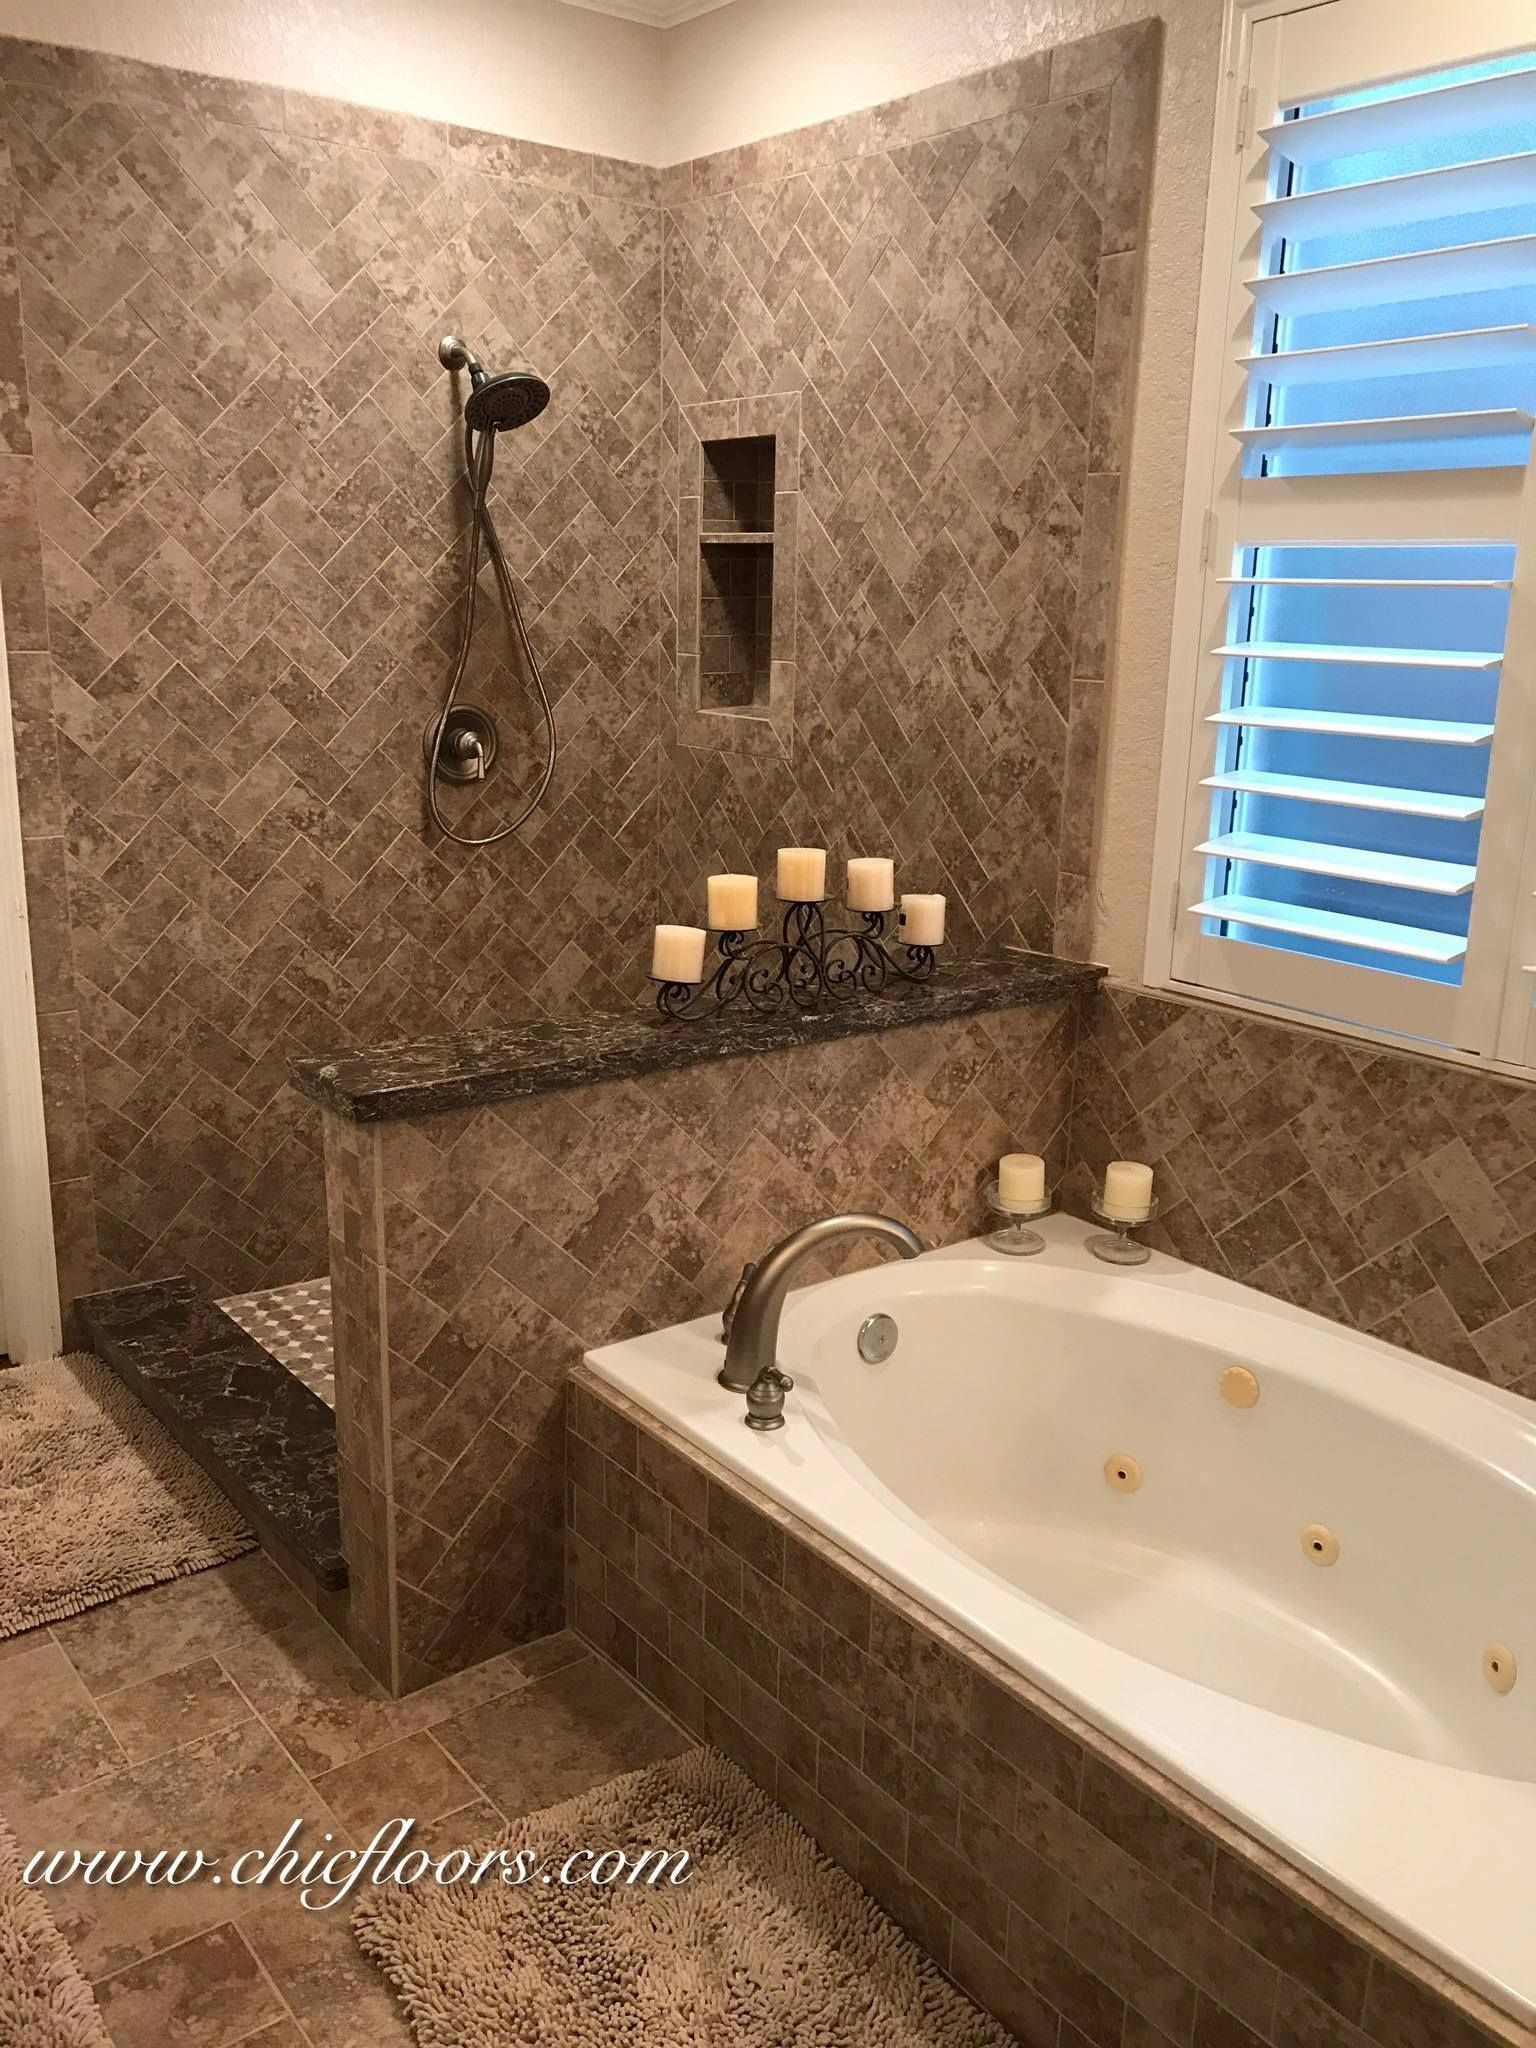 marazziusa Campione porcelain tile installed in various sizes on ...